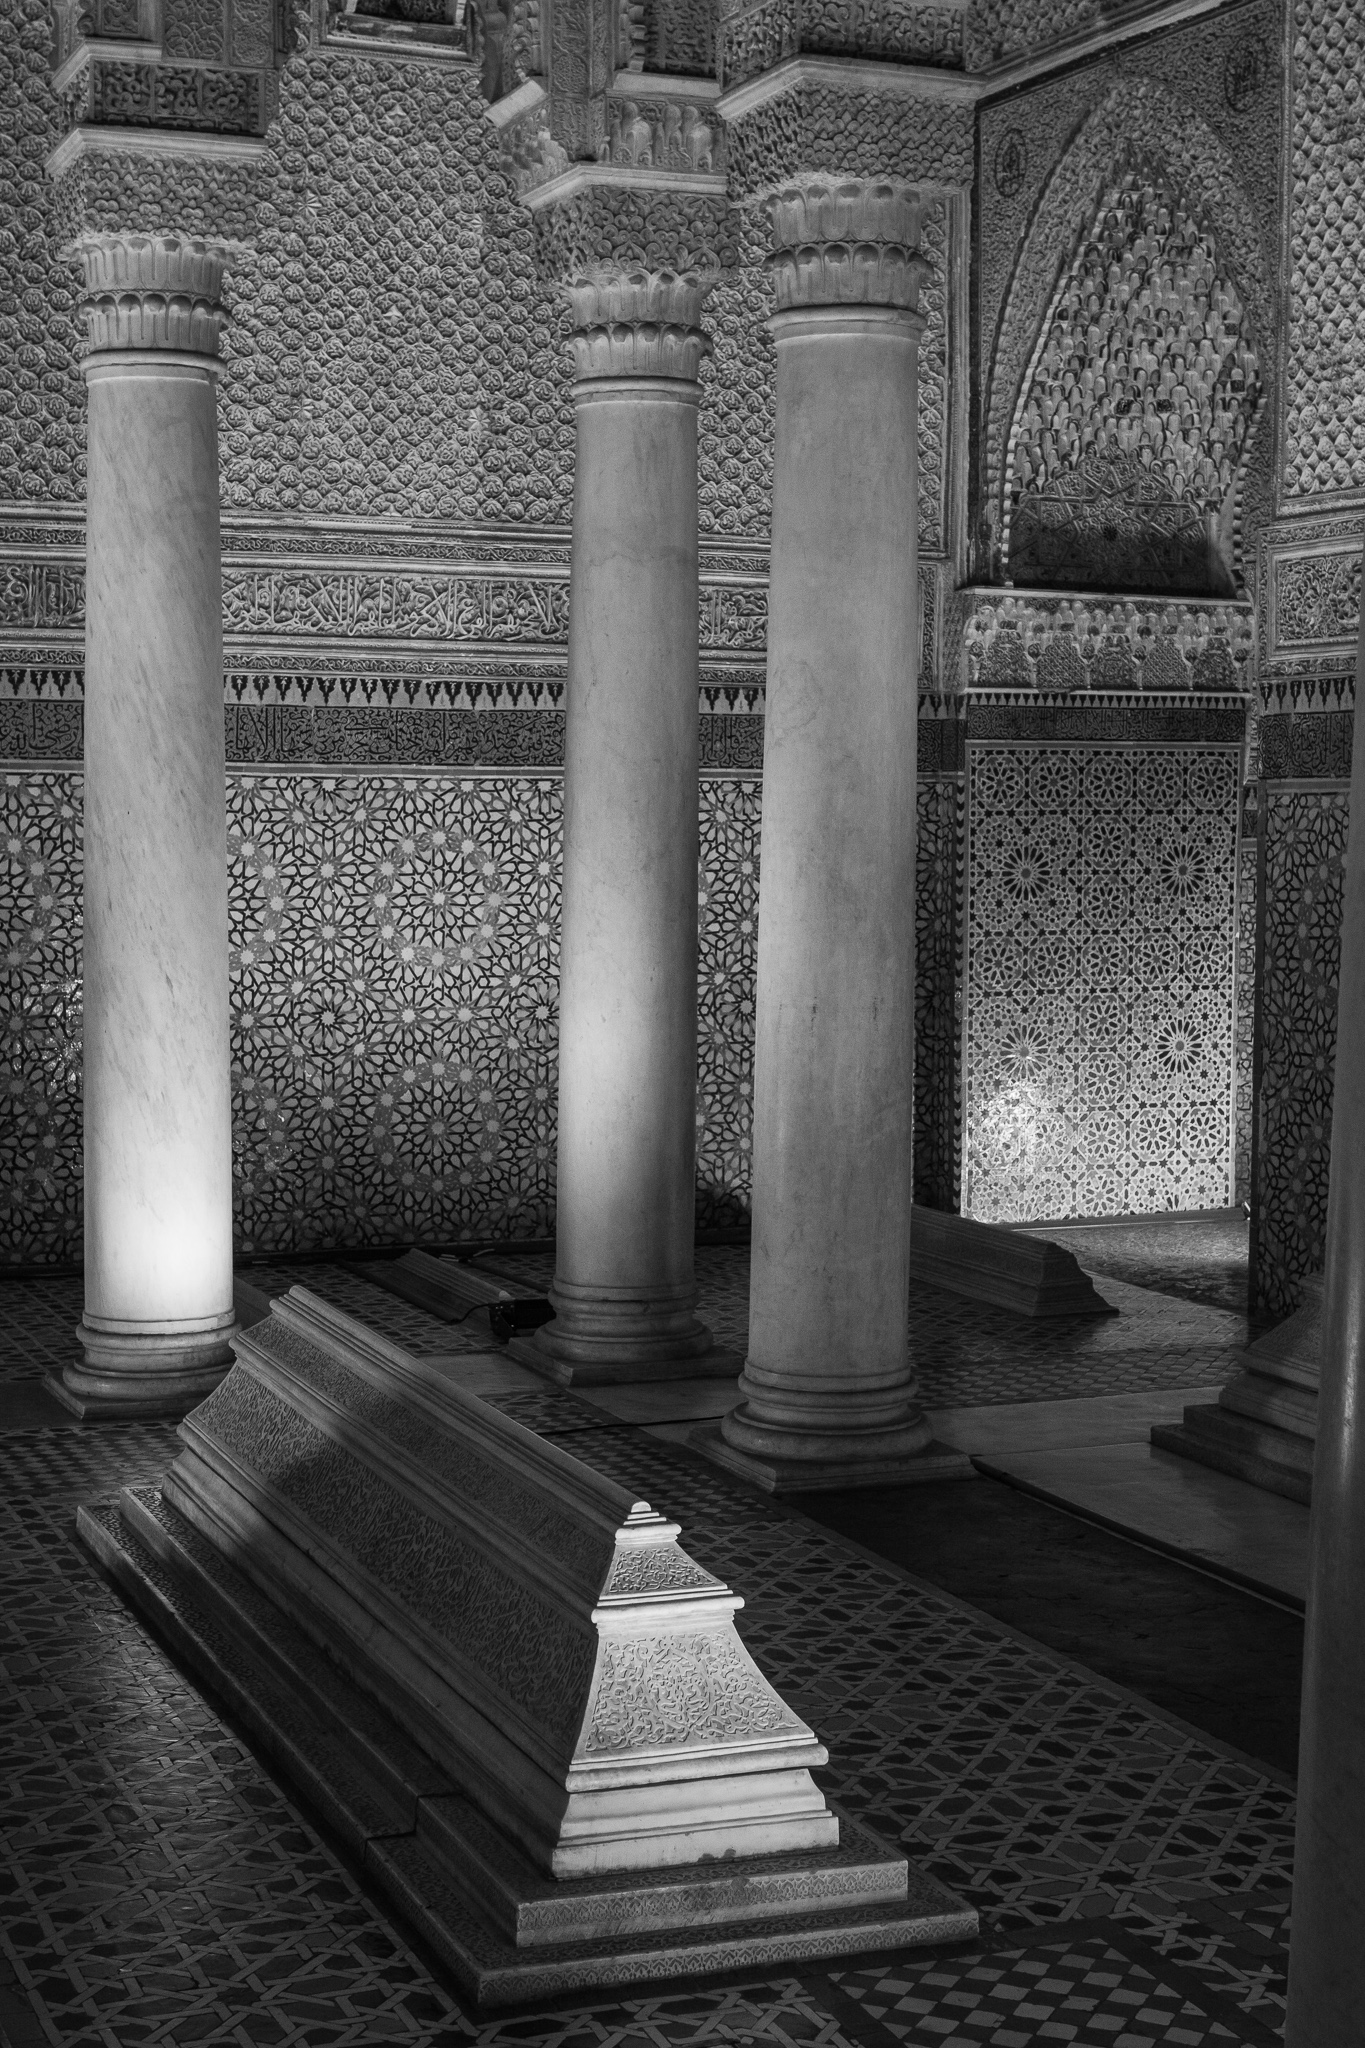 The Saadian Tombs are one of the few remaining residues of the Saadi dynasty, which ruled in Marrakesh from 1524 to 1659. <br>In the main mausoleum we can find the white marble tombs of Sultan Ahmad al-Mansur and his family, while the bodies of servants and warriors faithful to the dynasty are in the rest of the enclosure, which conveys more than 100 tombs decorated with mosaics.